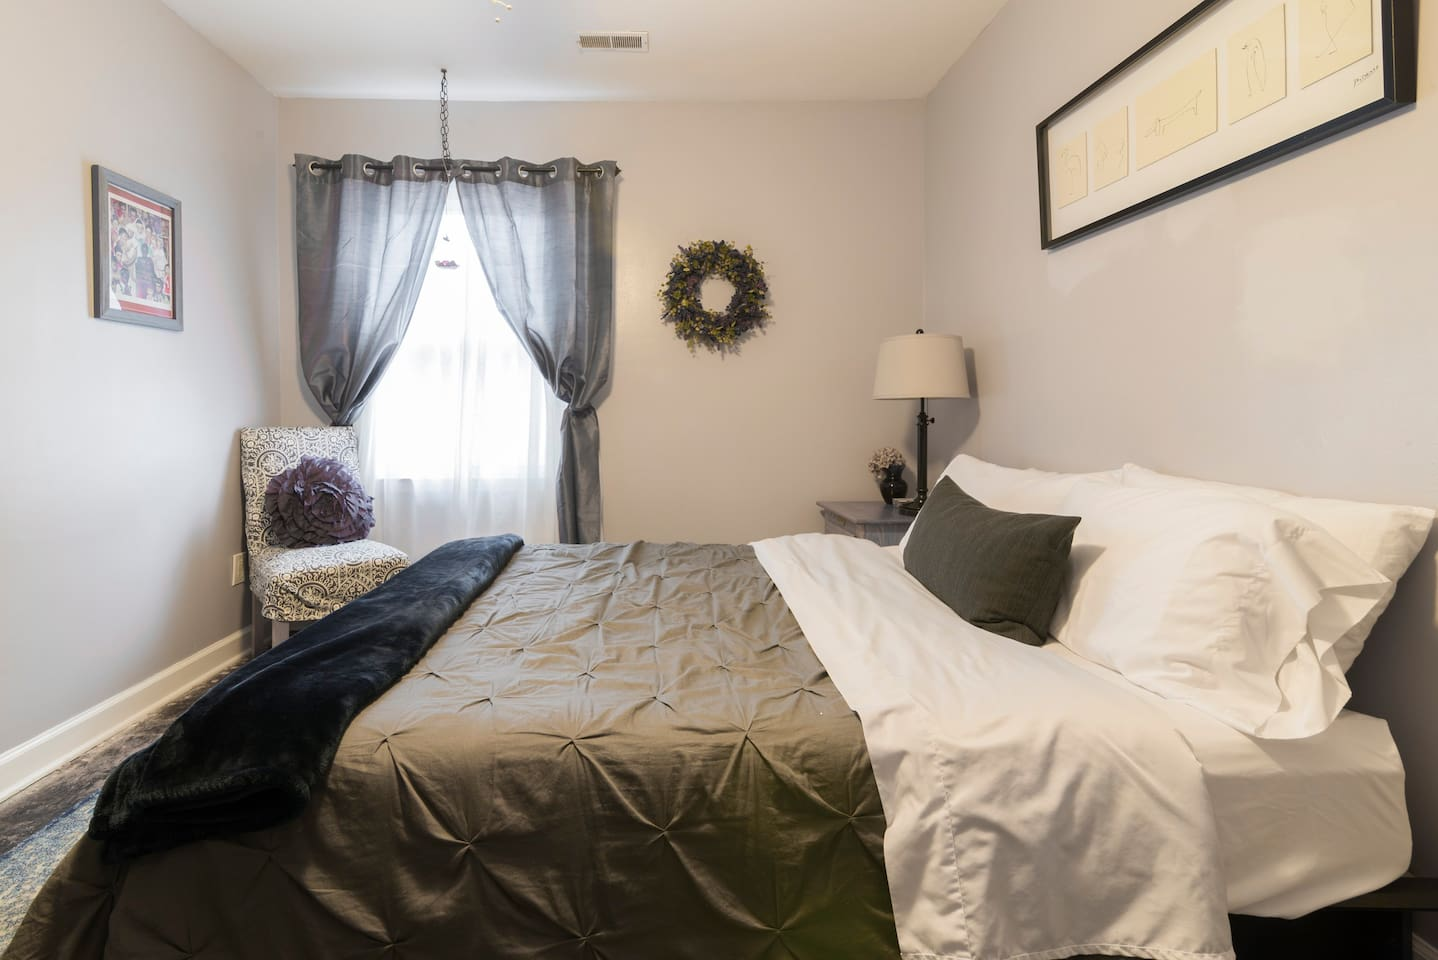 Spacious private queen room, with private entrance - room is separate (mother in law suite) from host- guests have private entrance, private bathroom and private patio.